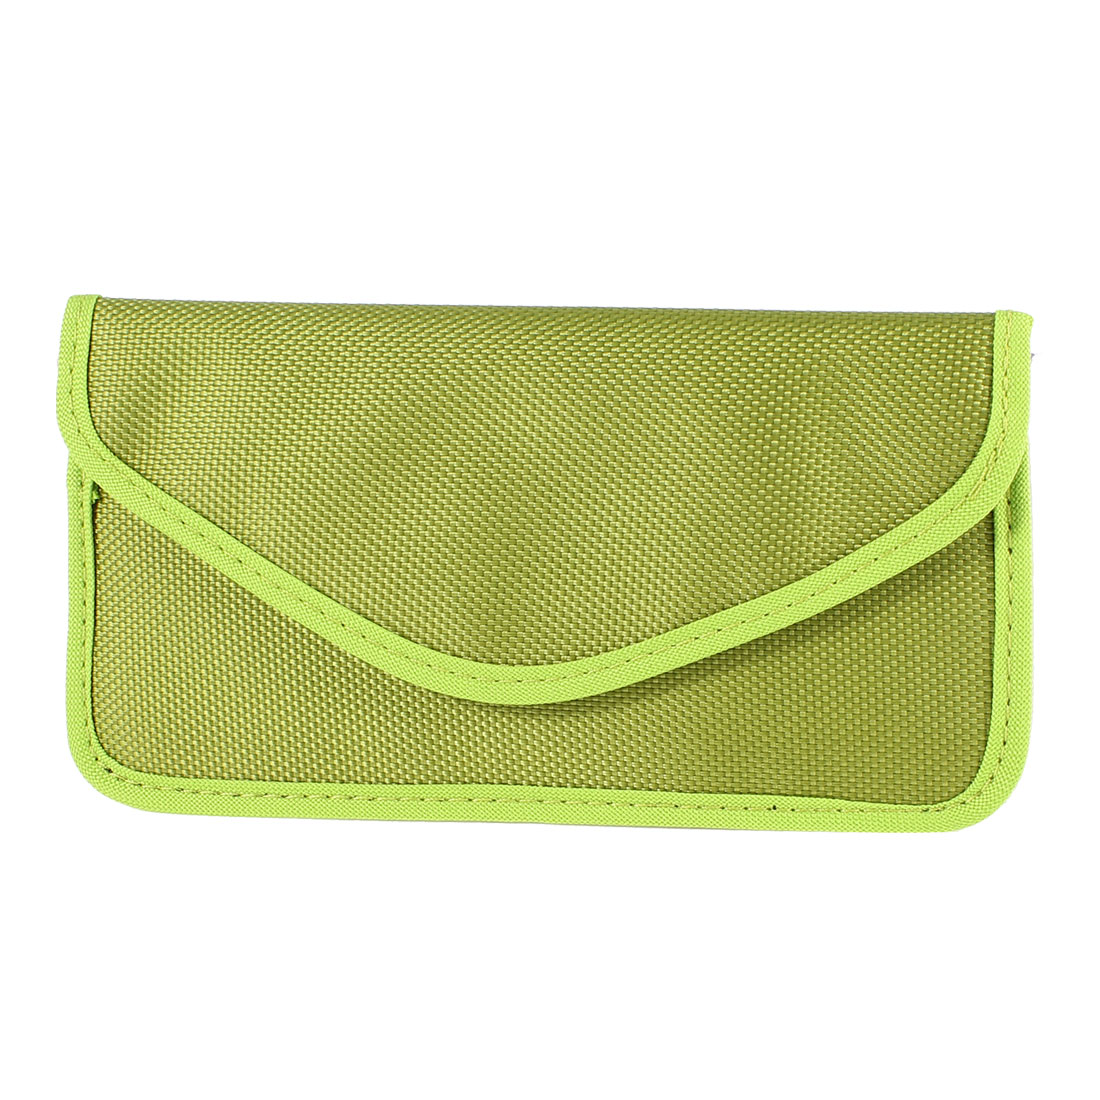 Cell Phone Textured Cloth Rectangle Shape Anti-static Pouch Case Bag Green